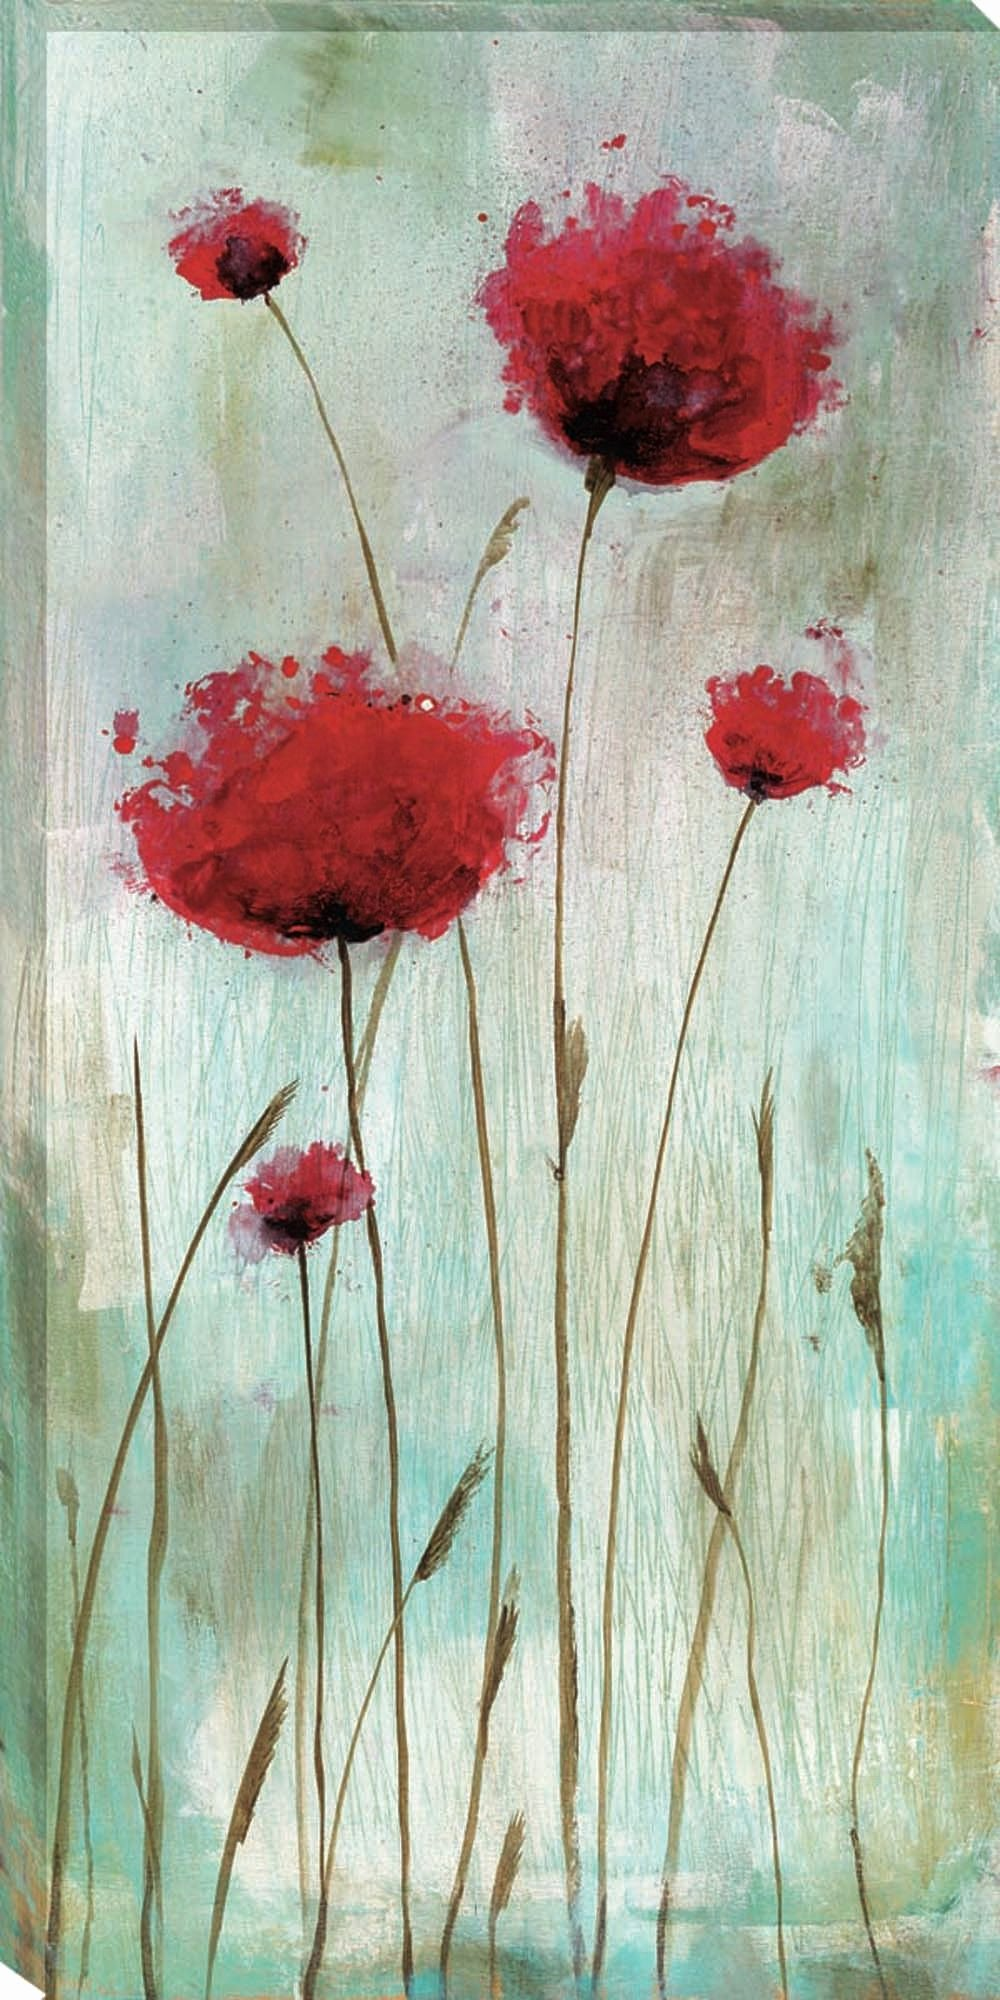 Picture Of Flowers to Paint Luxury Splash Poppies I by Catherine Brink Framed Painting Print